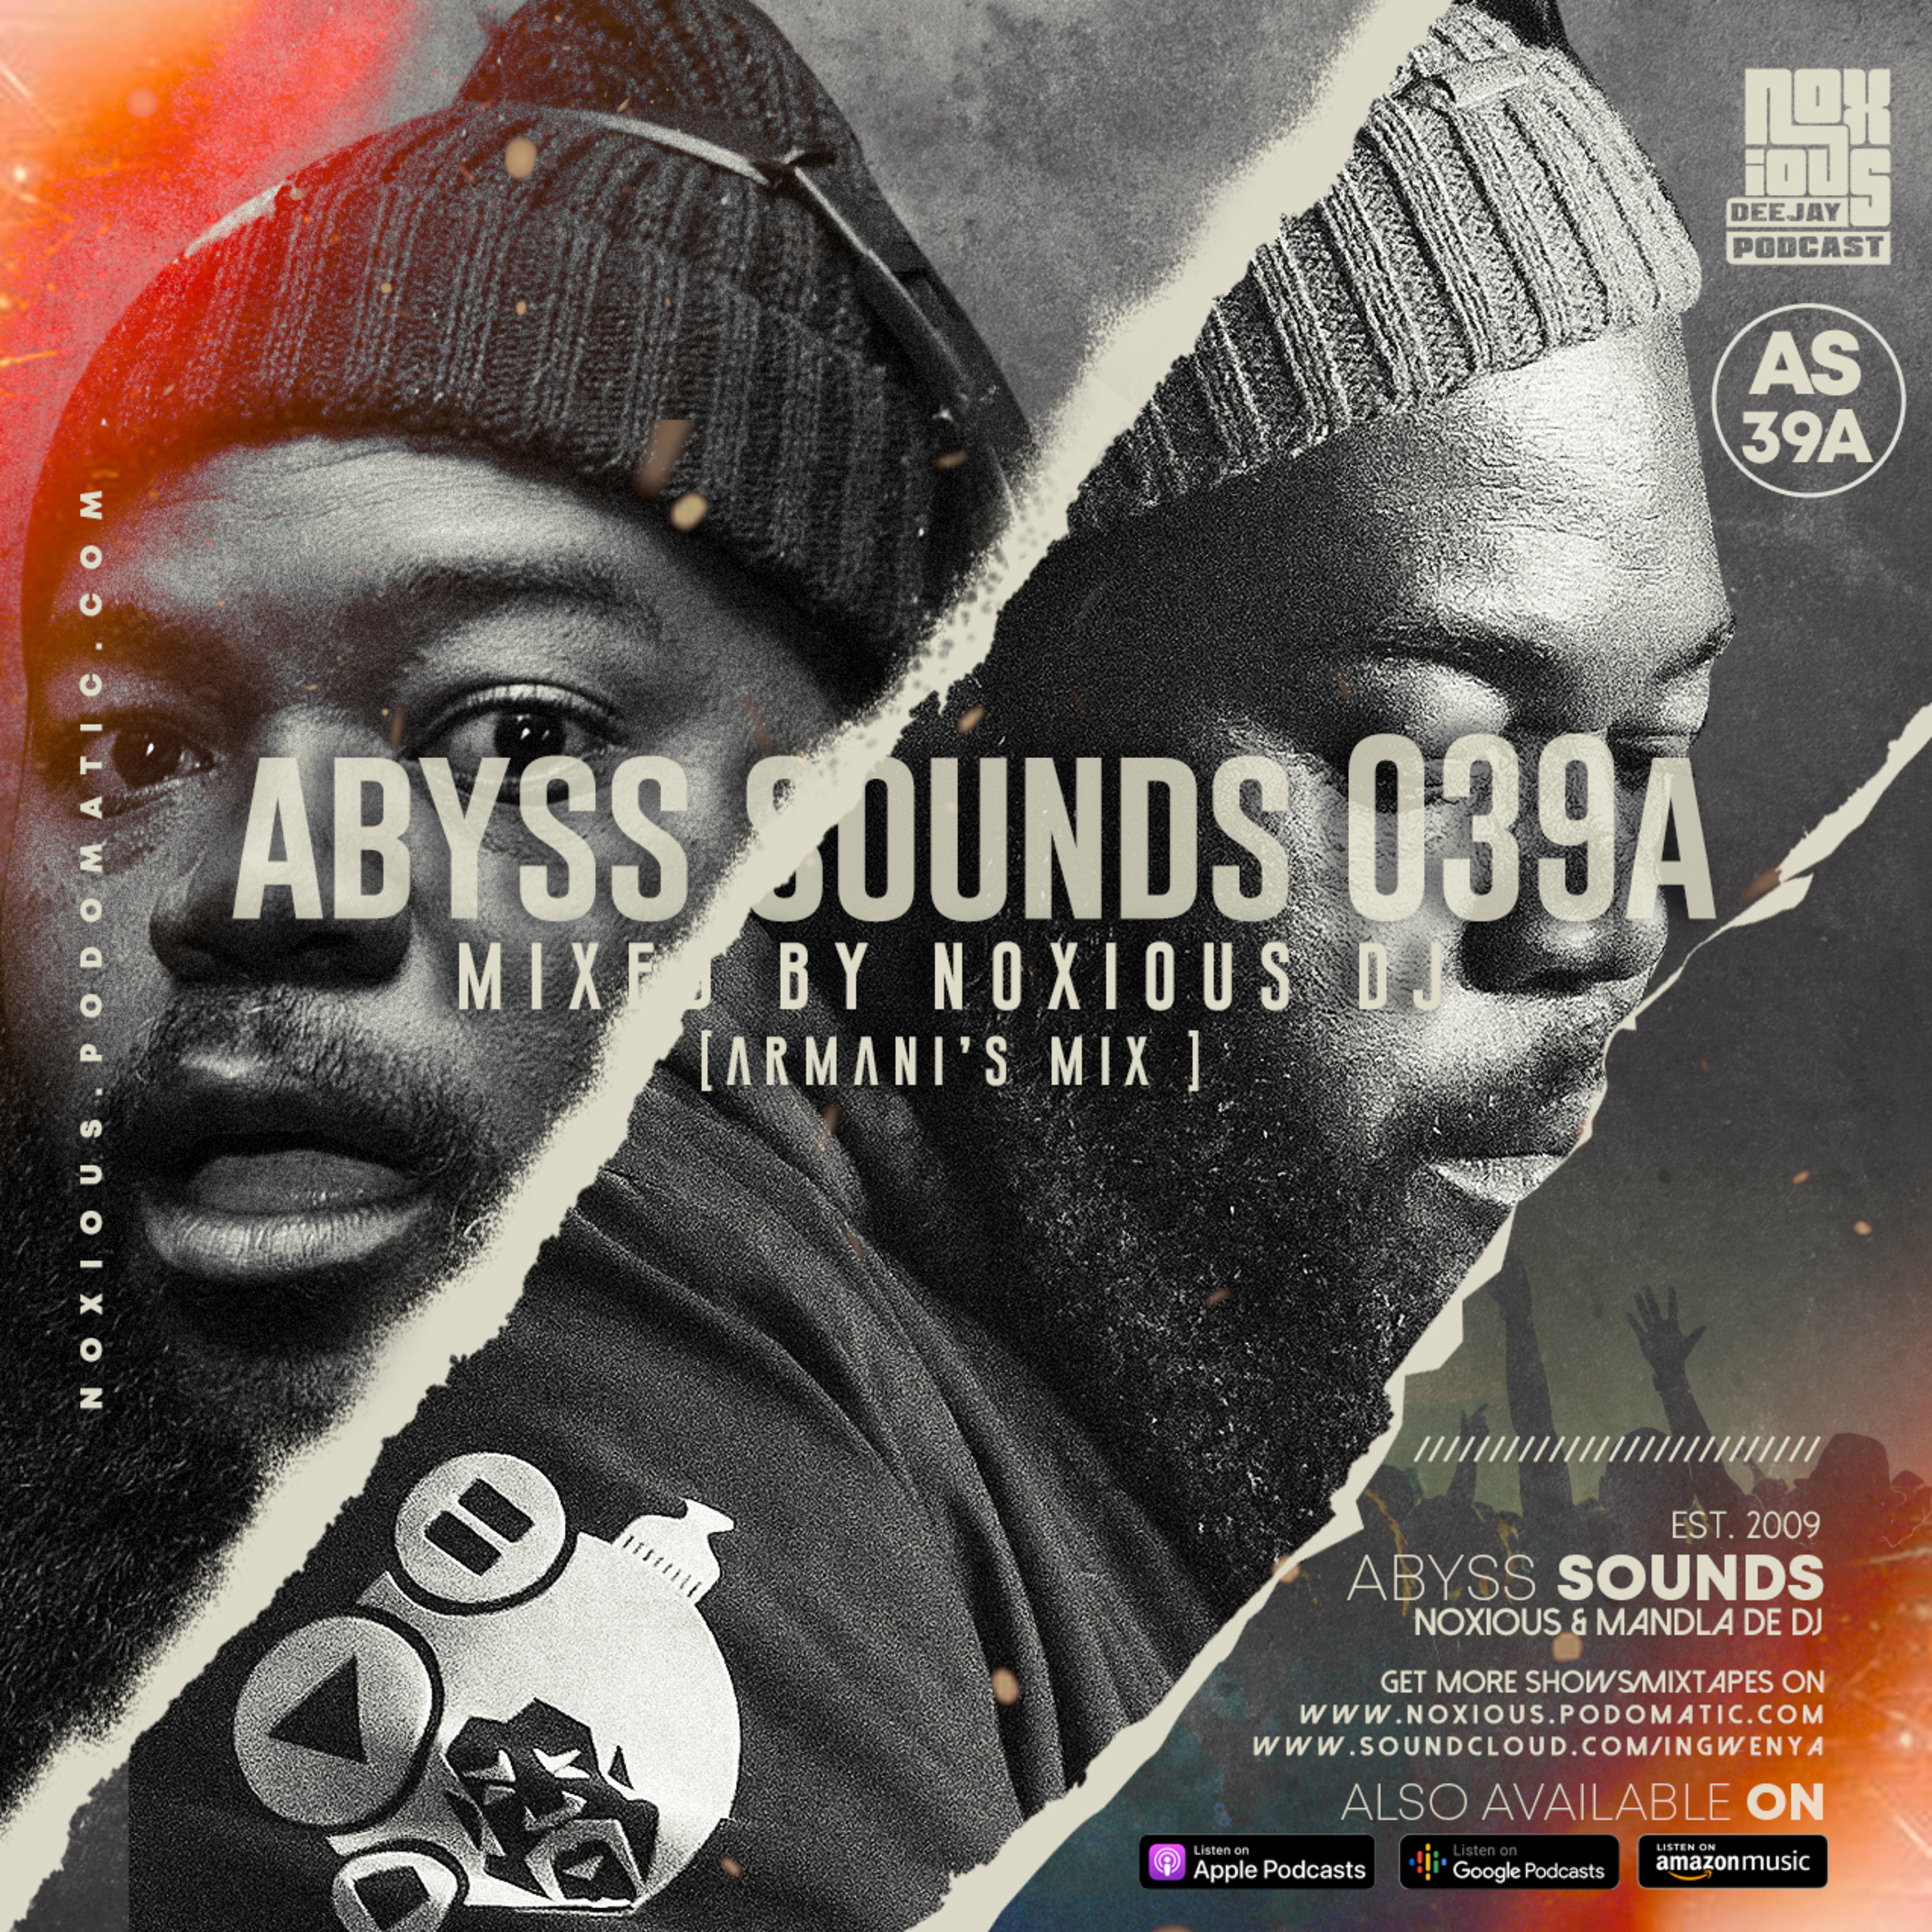 Episode 102: Abyss Sounds 039A (Mixed by Noxious DJ) [Armani's Mix]